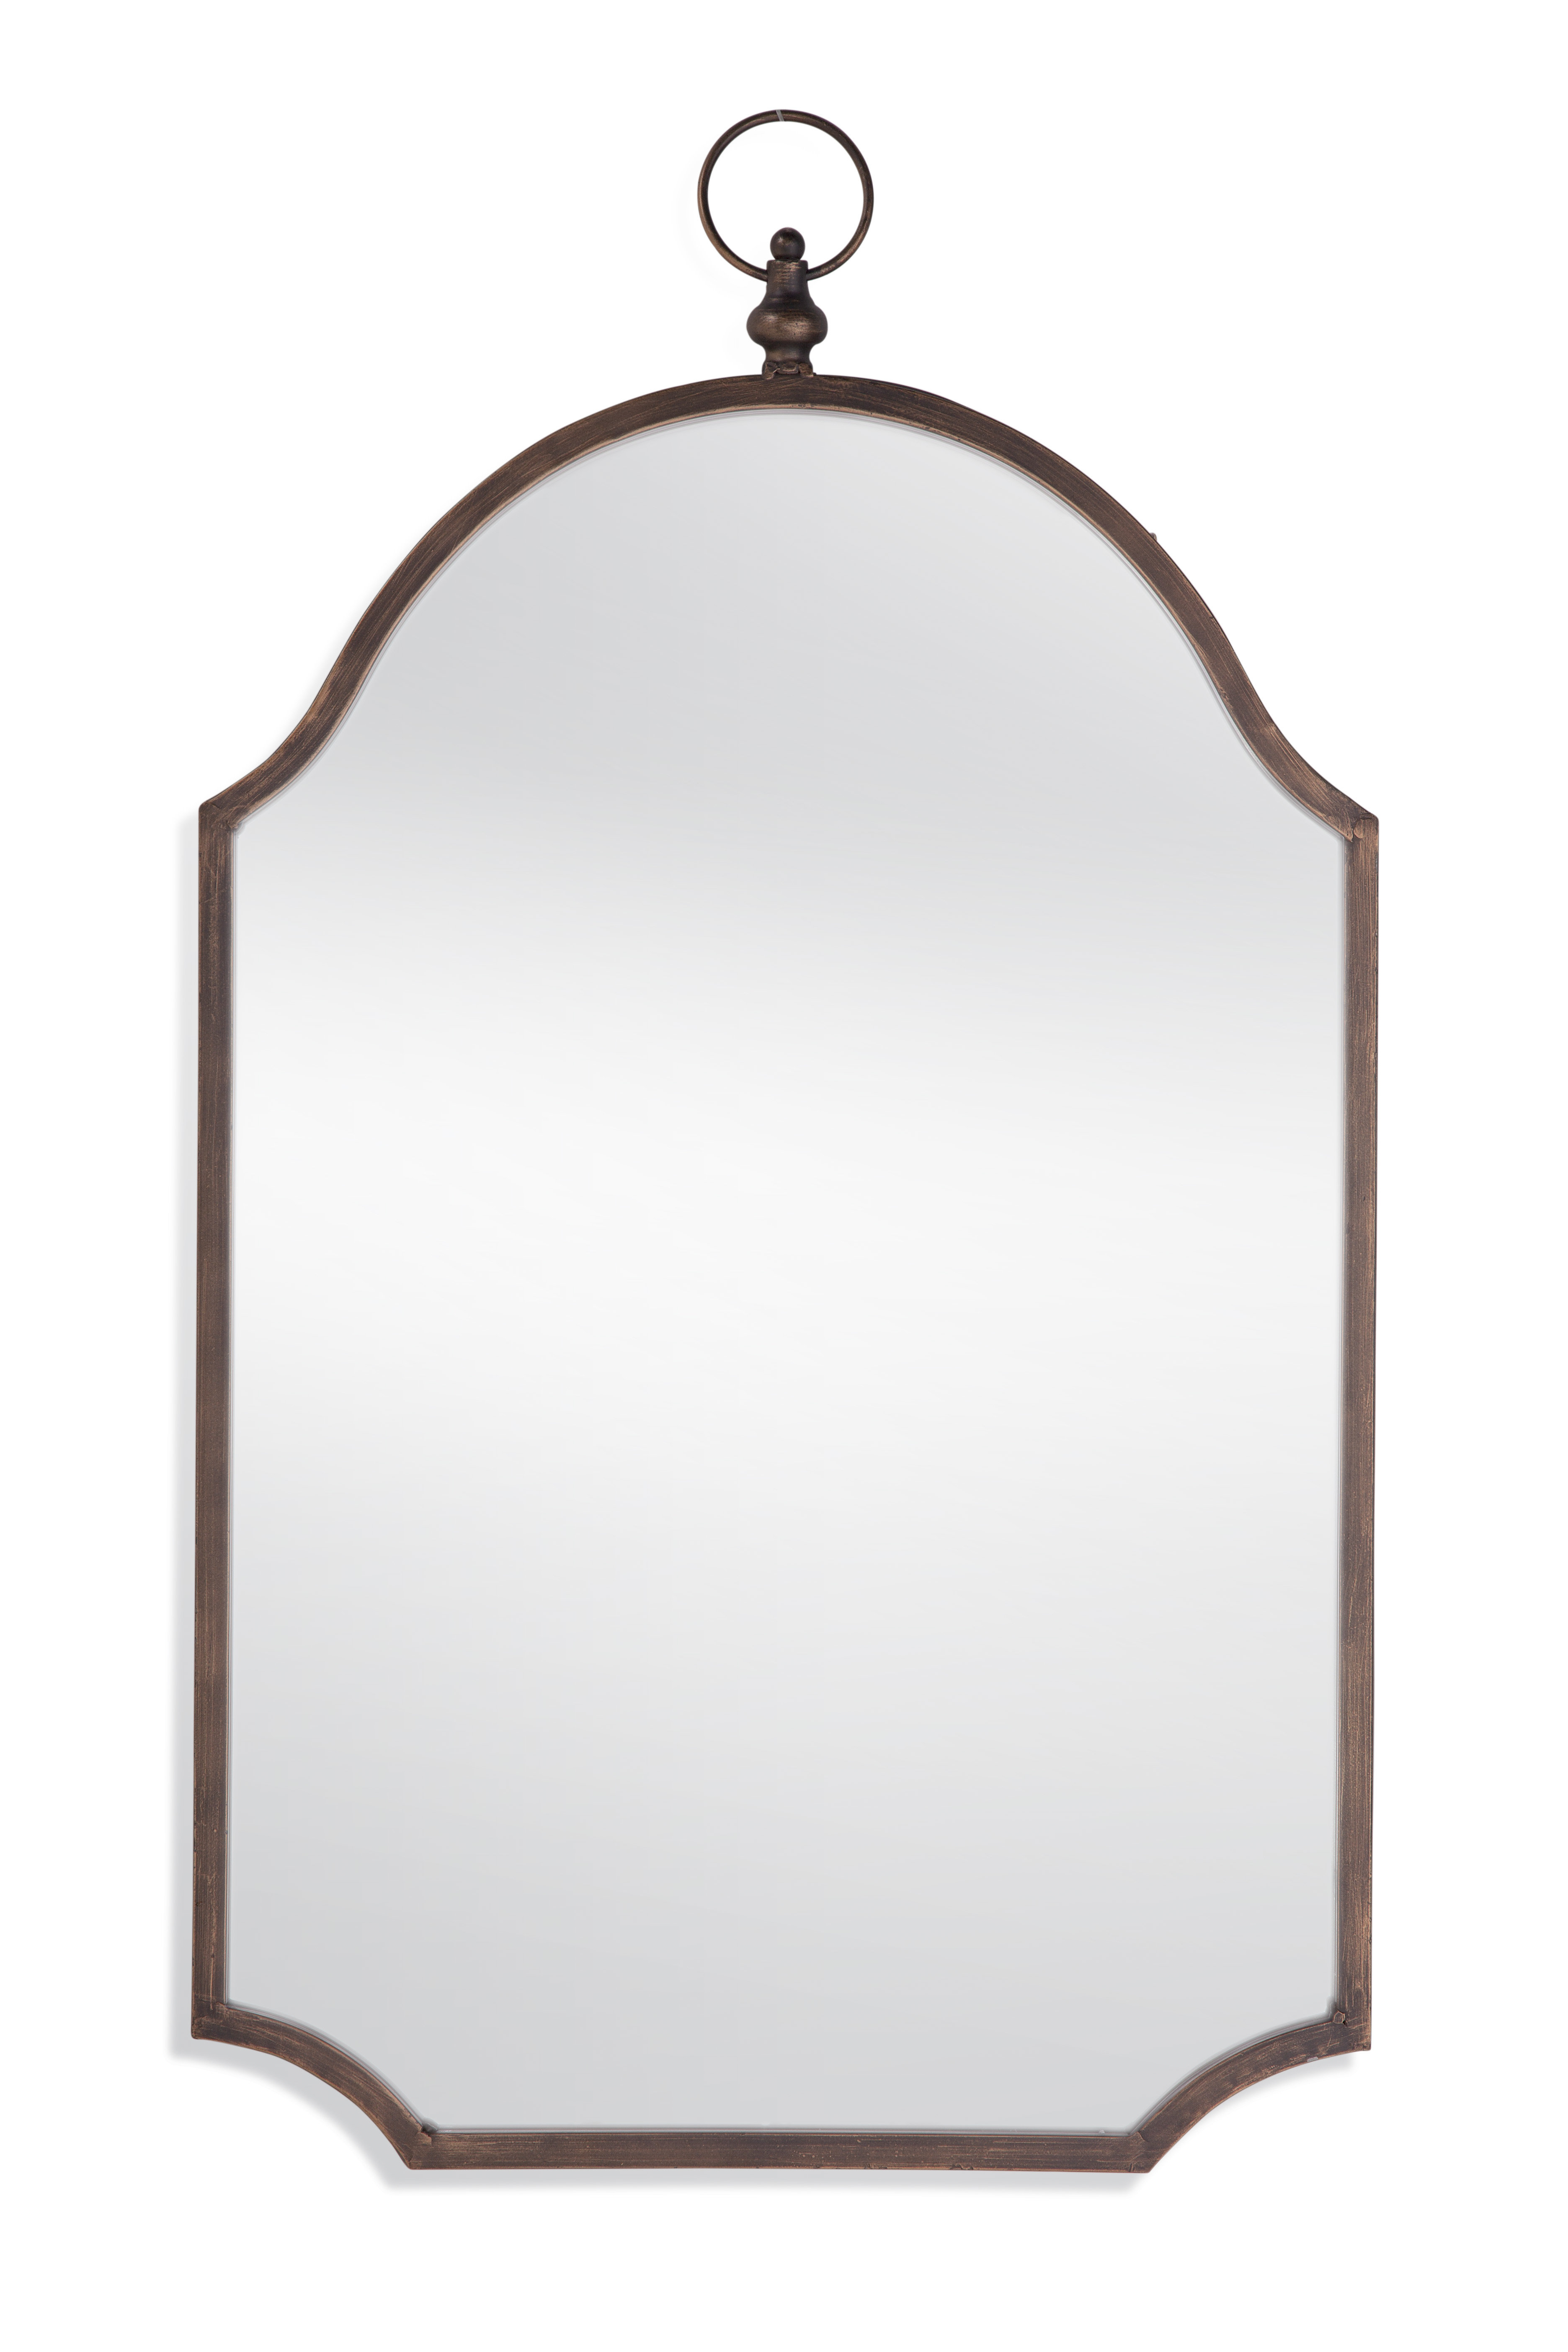 Inglaterra Accent Mirror With Bristol Accent Mirrors (View 4 of 20)